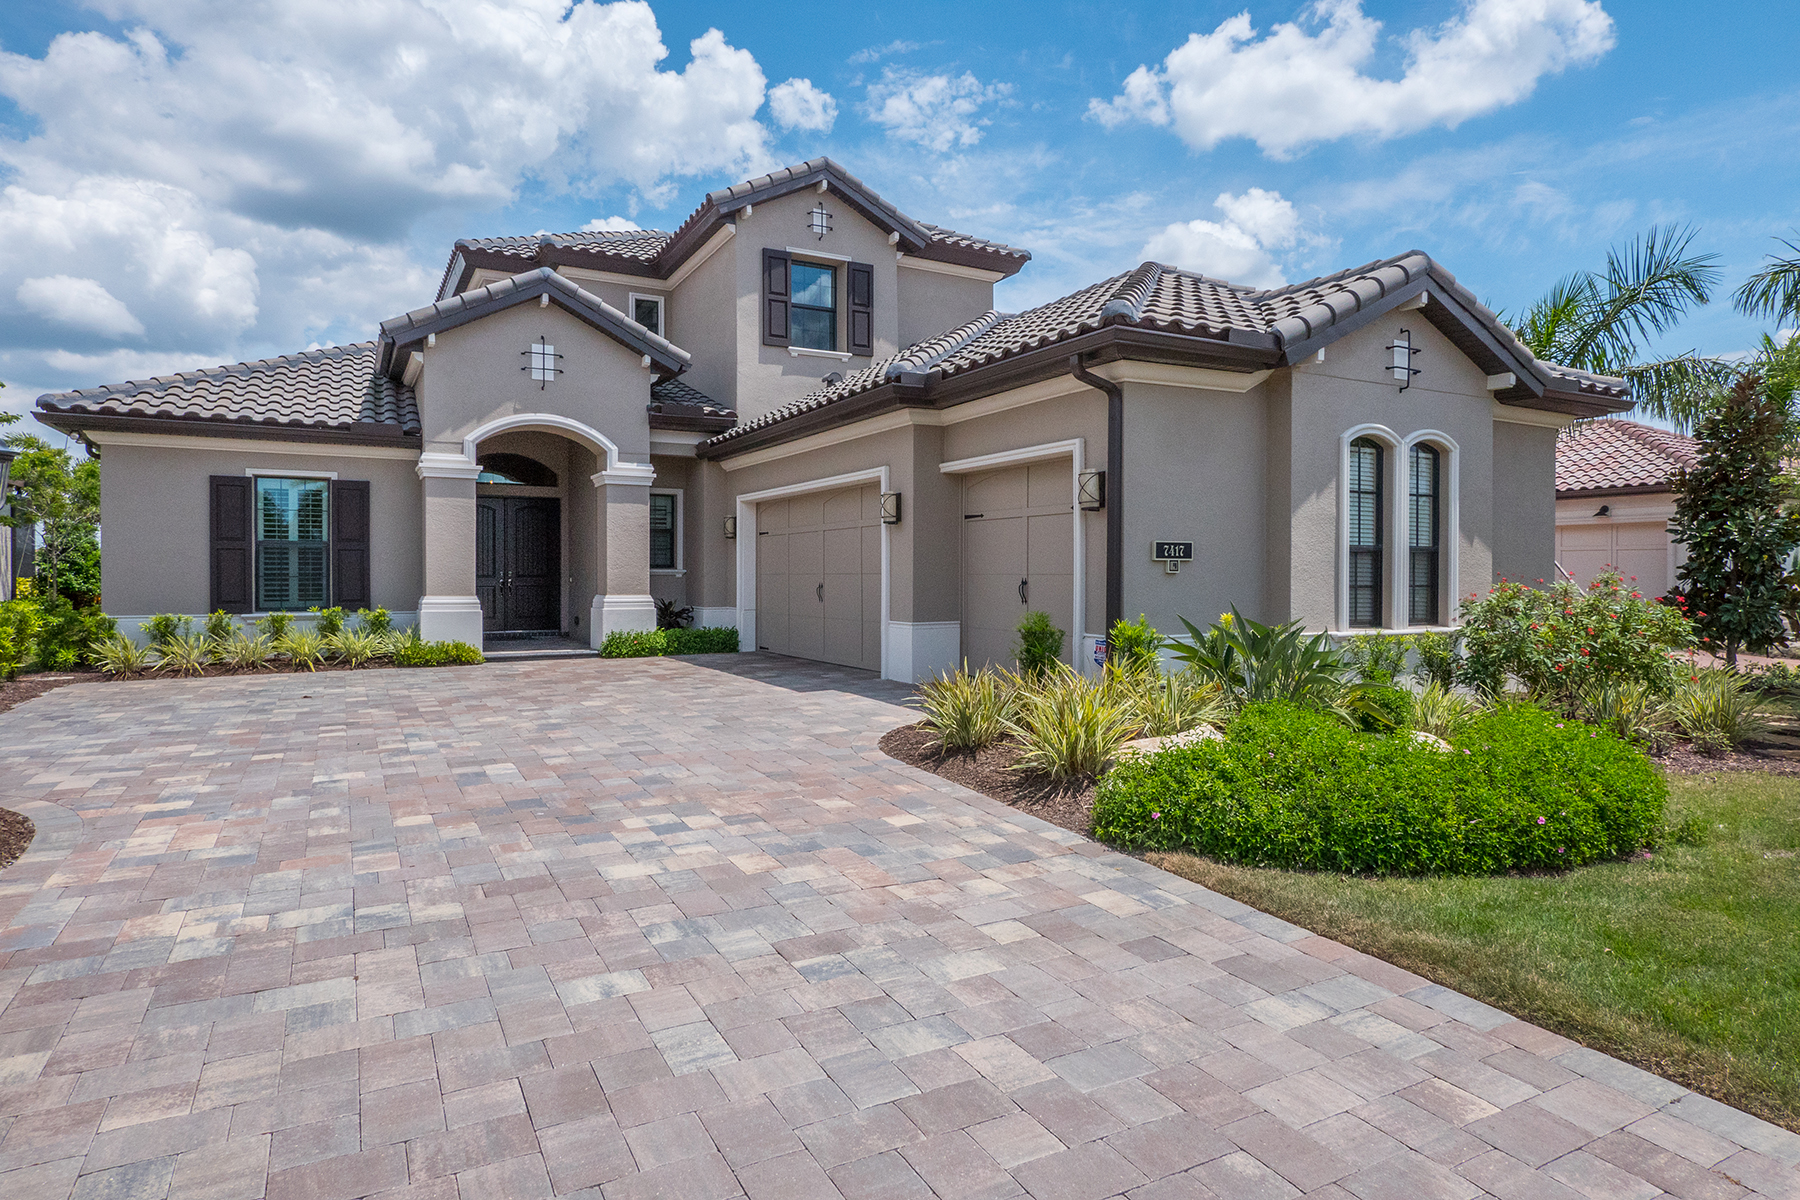 Single Family Home for Sale at LAKEWOOD RANCH COUNTRY CLUB EAST 7417 Haddington Cv Lakewood Ranch, Florida, 34202 United States